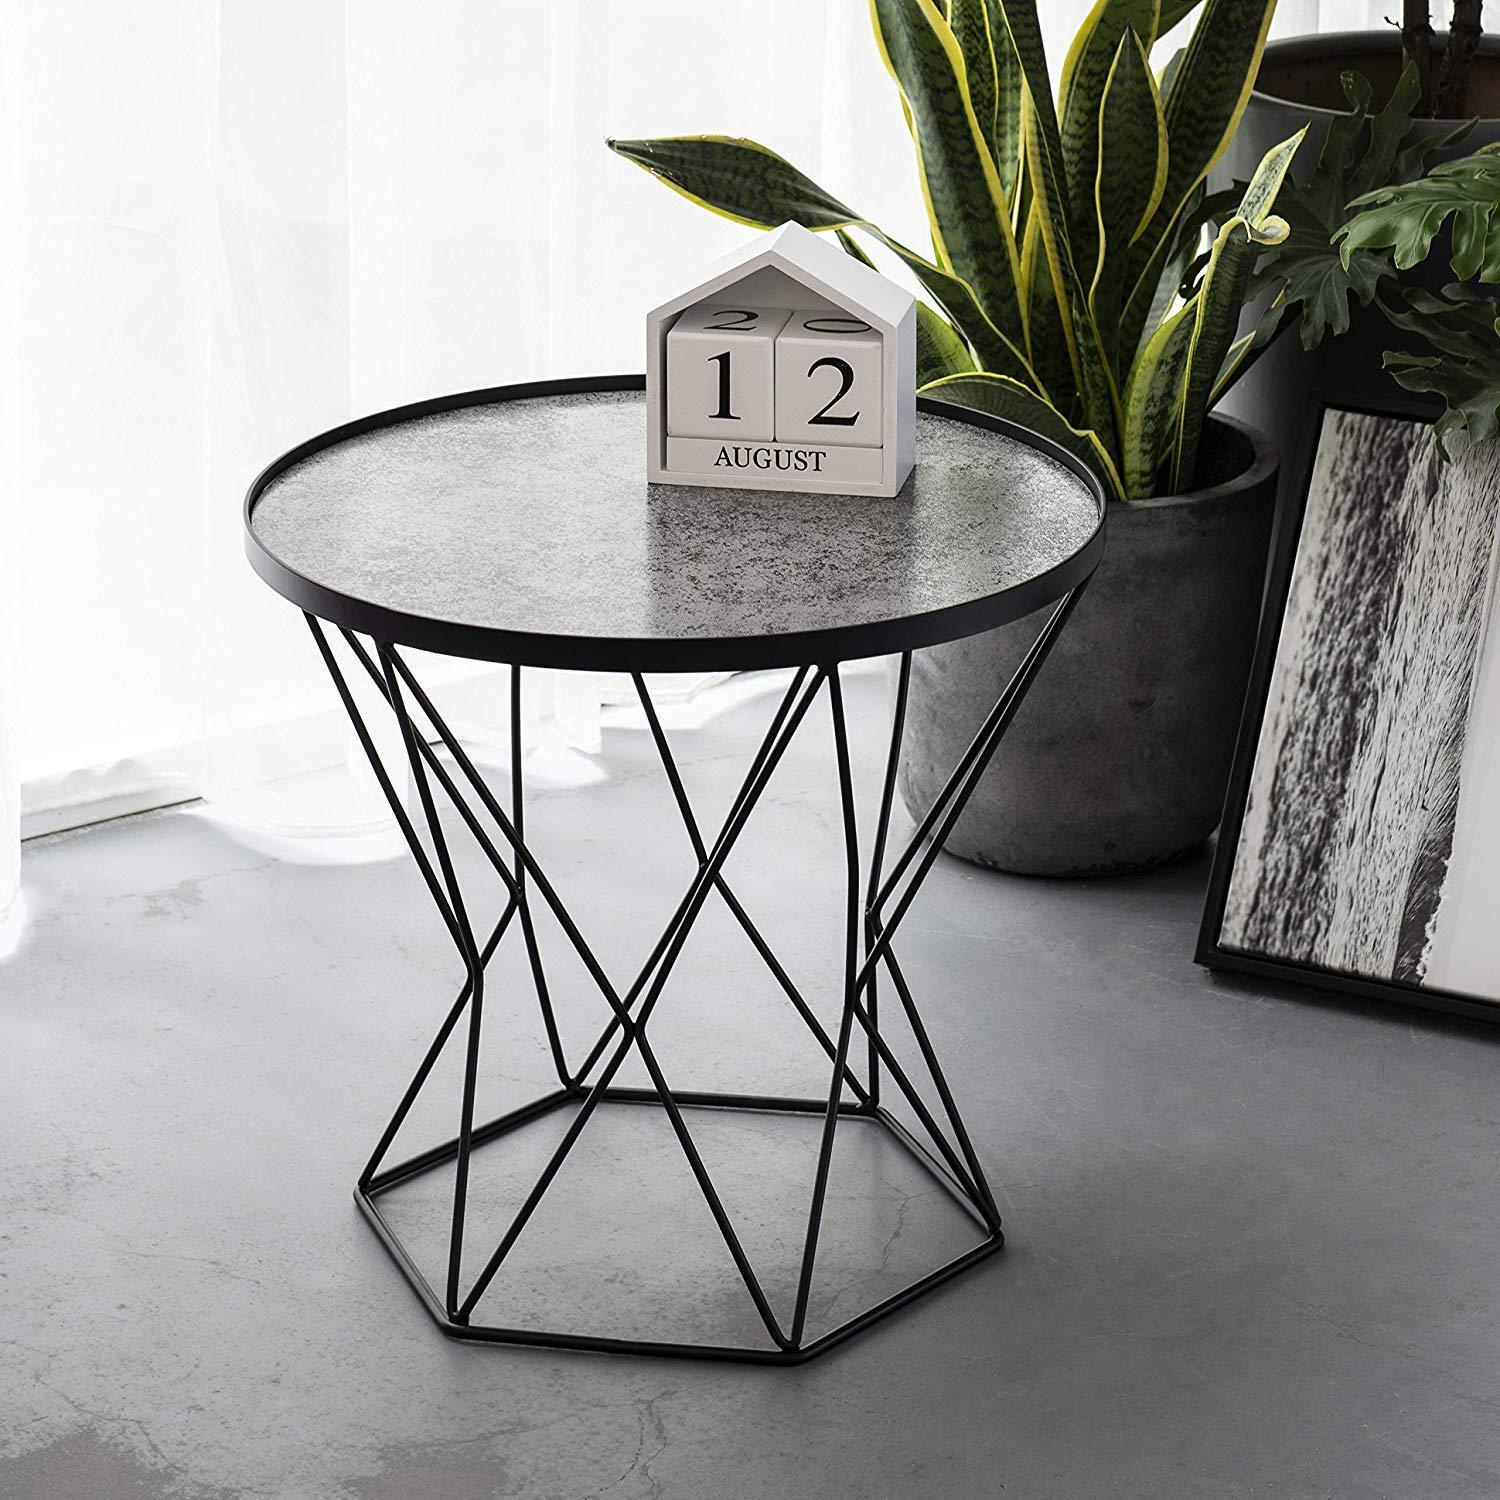 art leon small round end table modern glass top metal frame contemporary accent the stylish talbe just right for you which can meet most decor style this gorgerous placed not